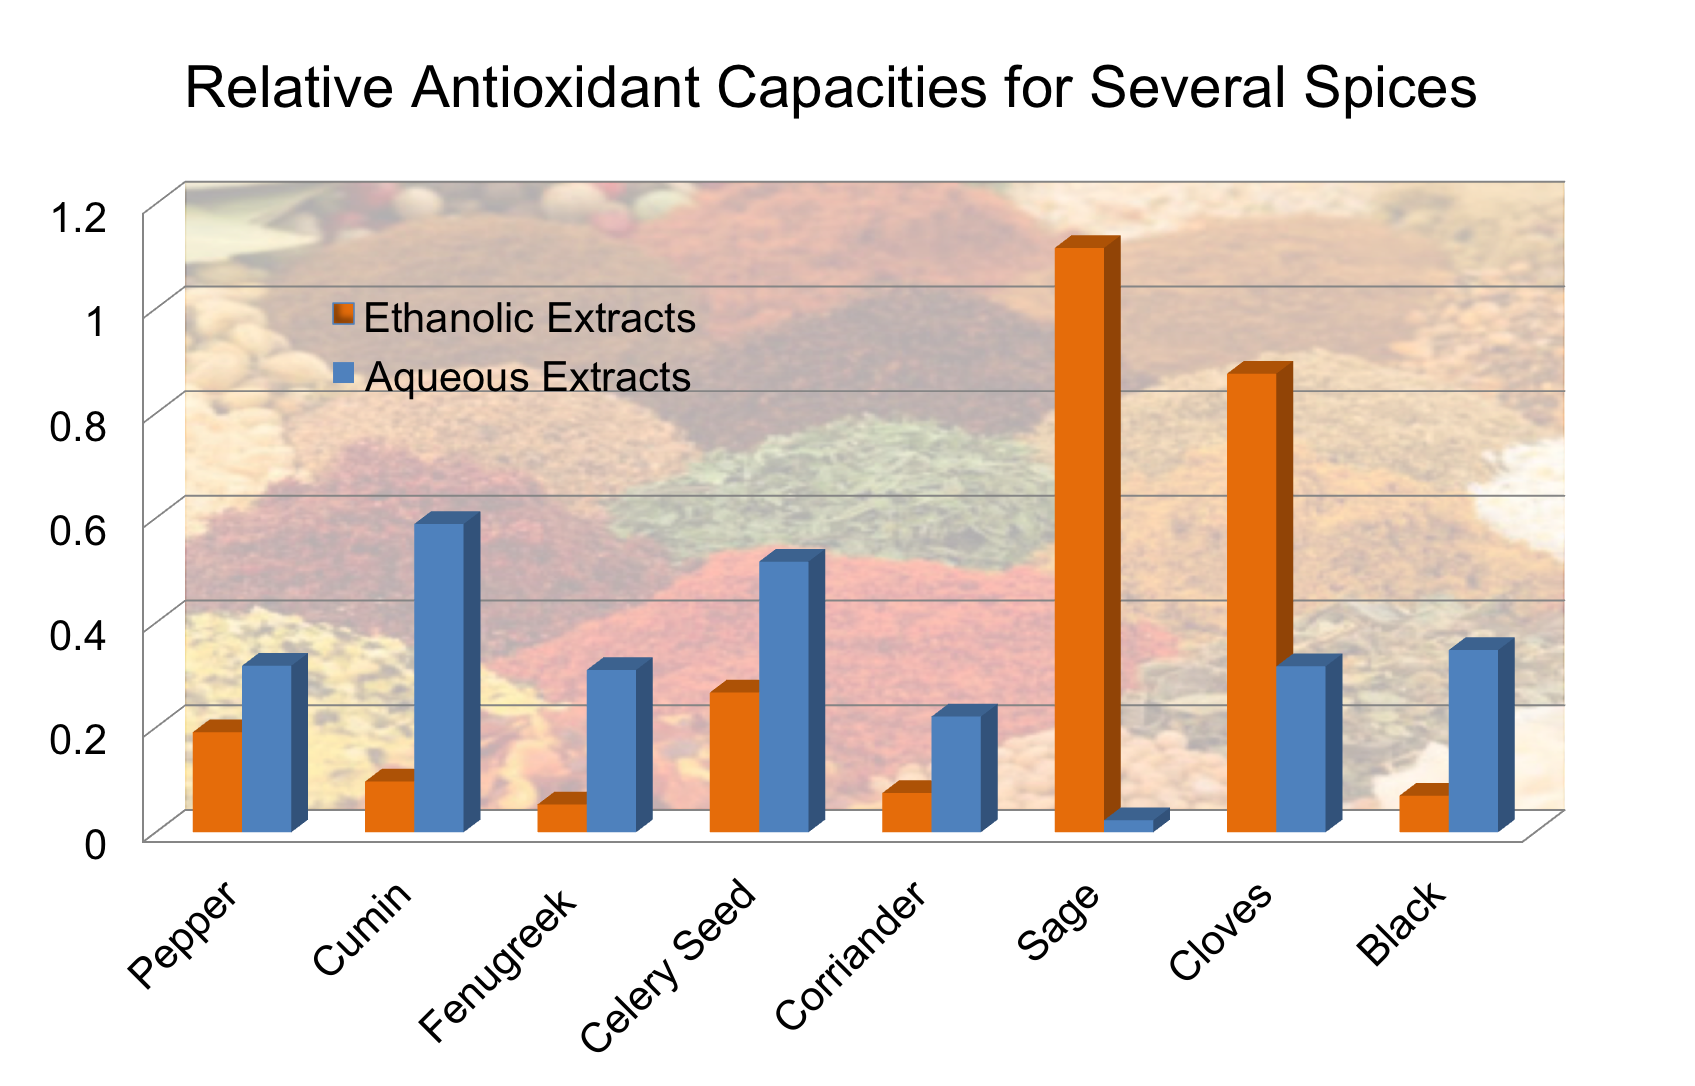 Relative Antioxidant Power of Spices